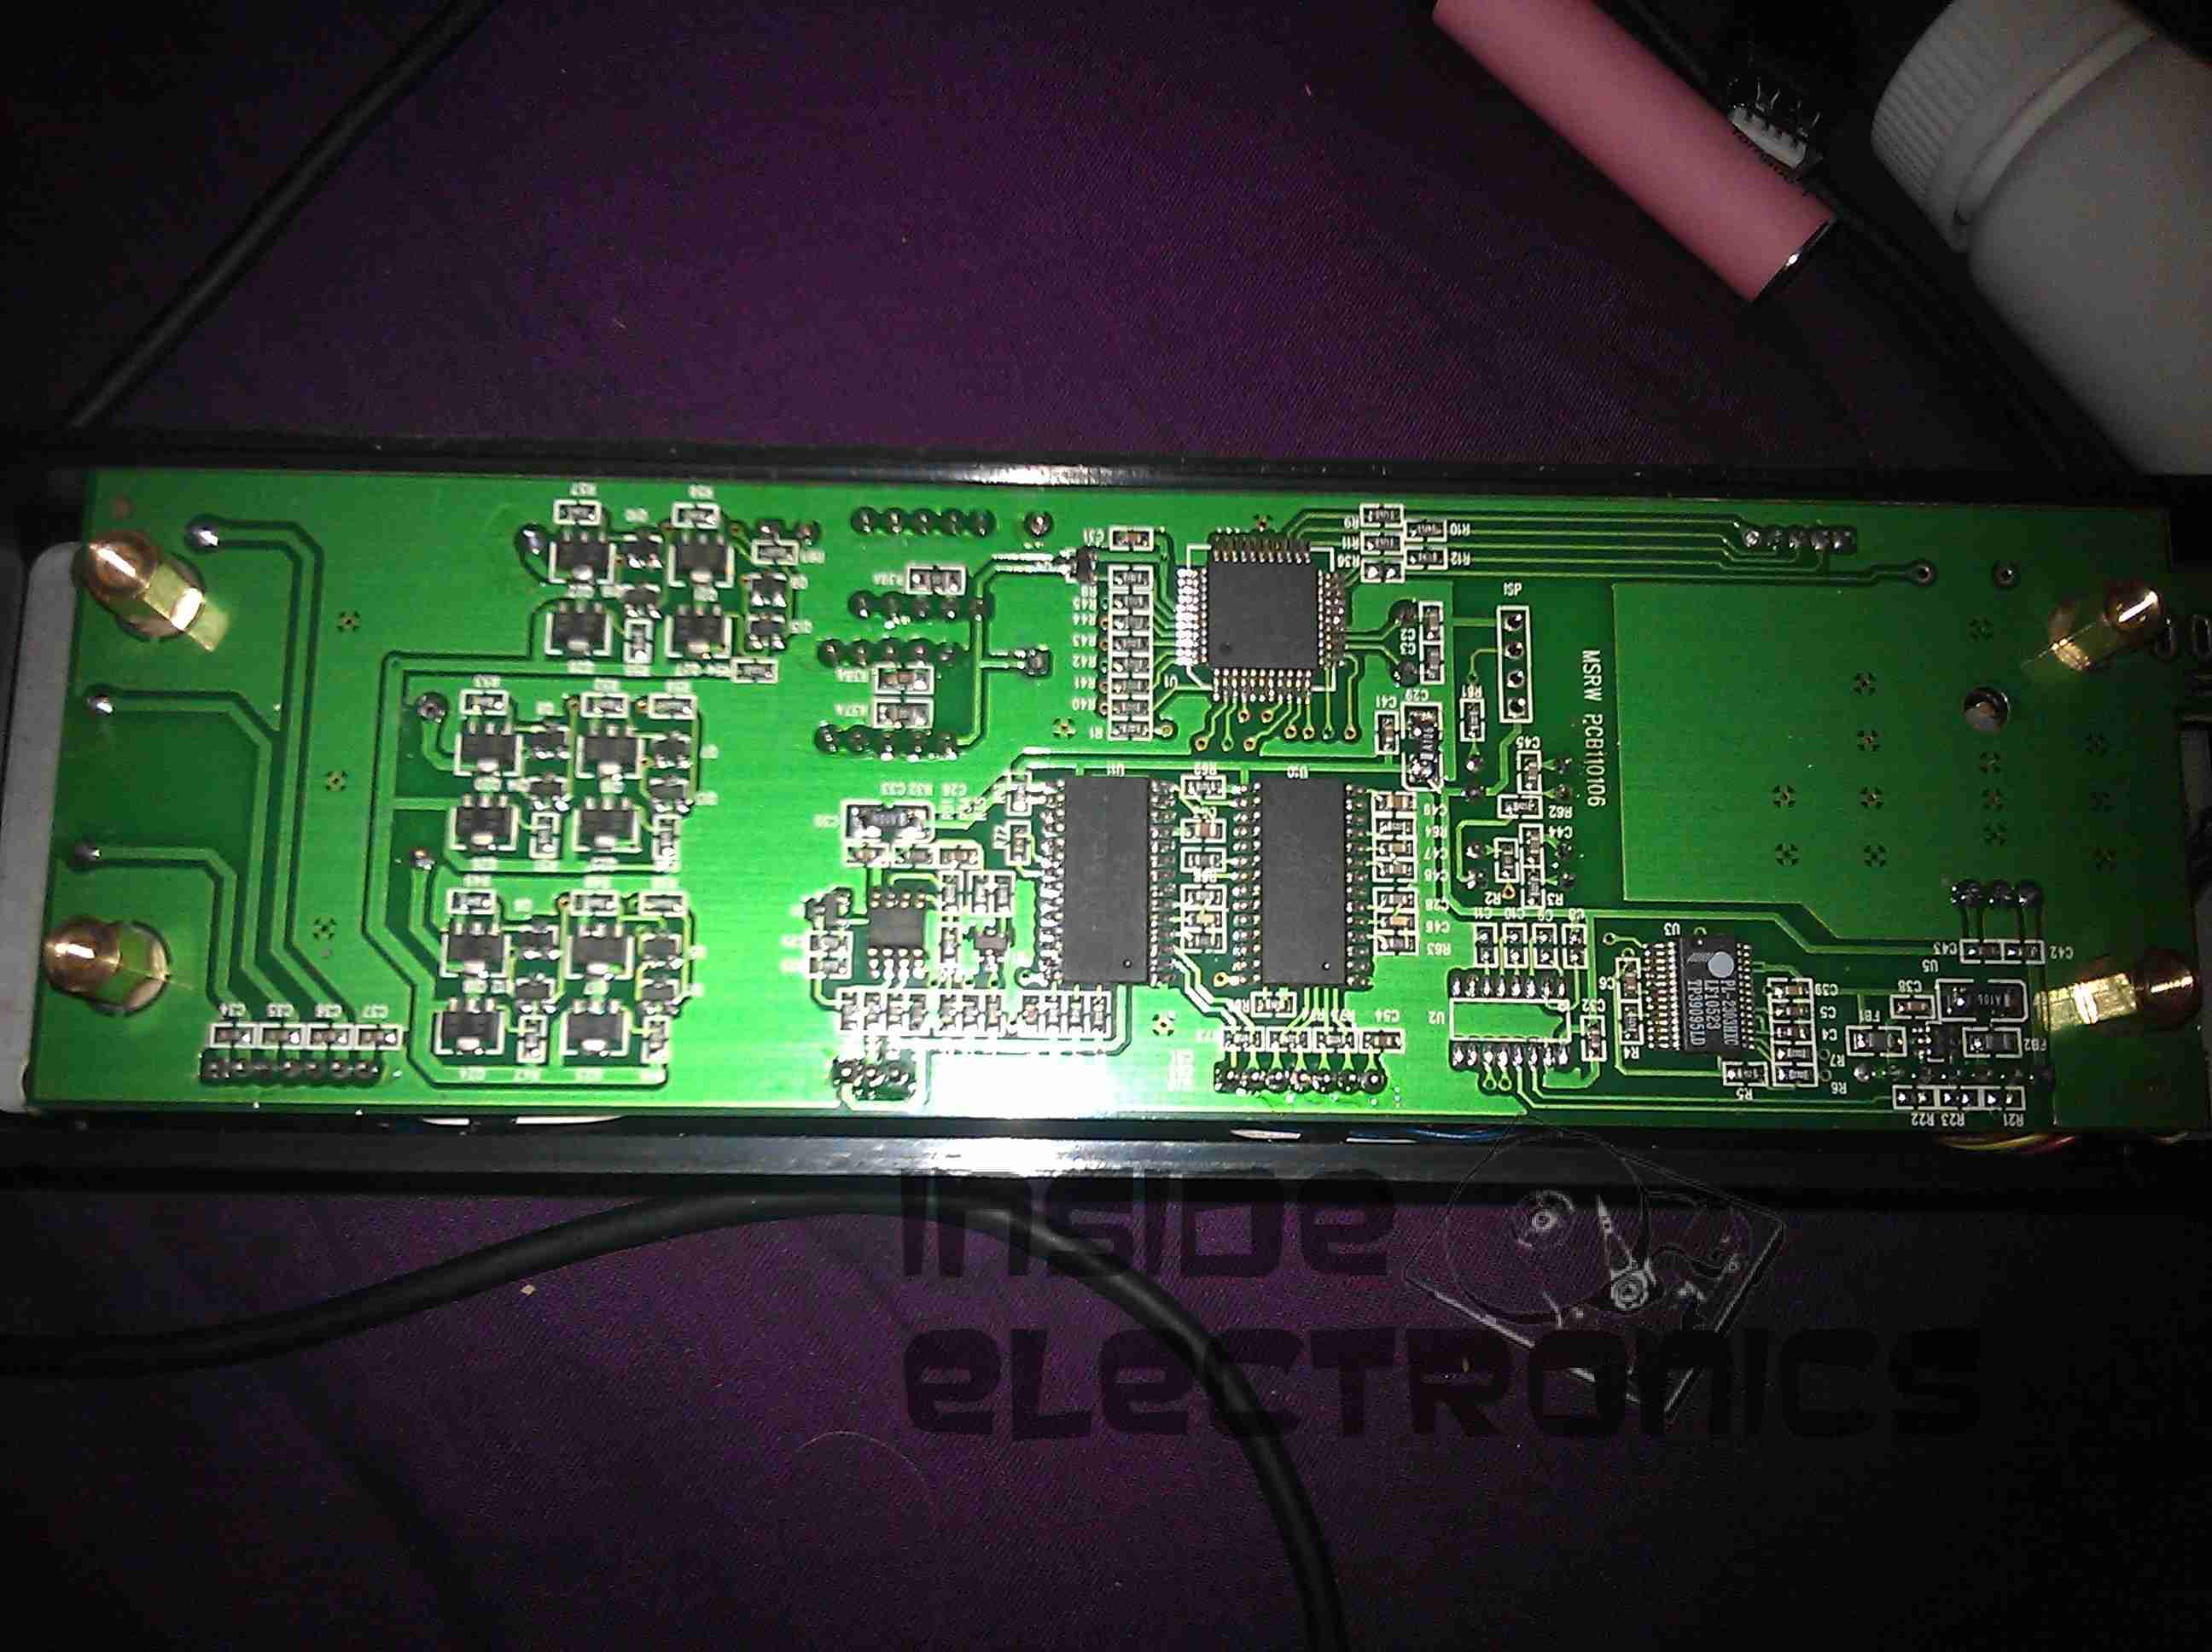 Msr605 3 Track Magnetic Stripe Writer Experimental Engineering Wiring Diagram Pcb Bottom